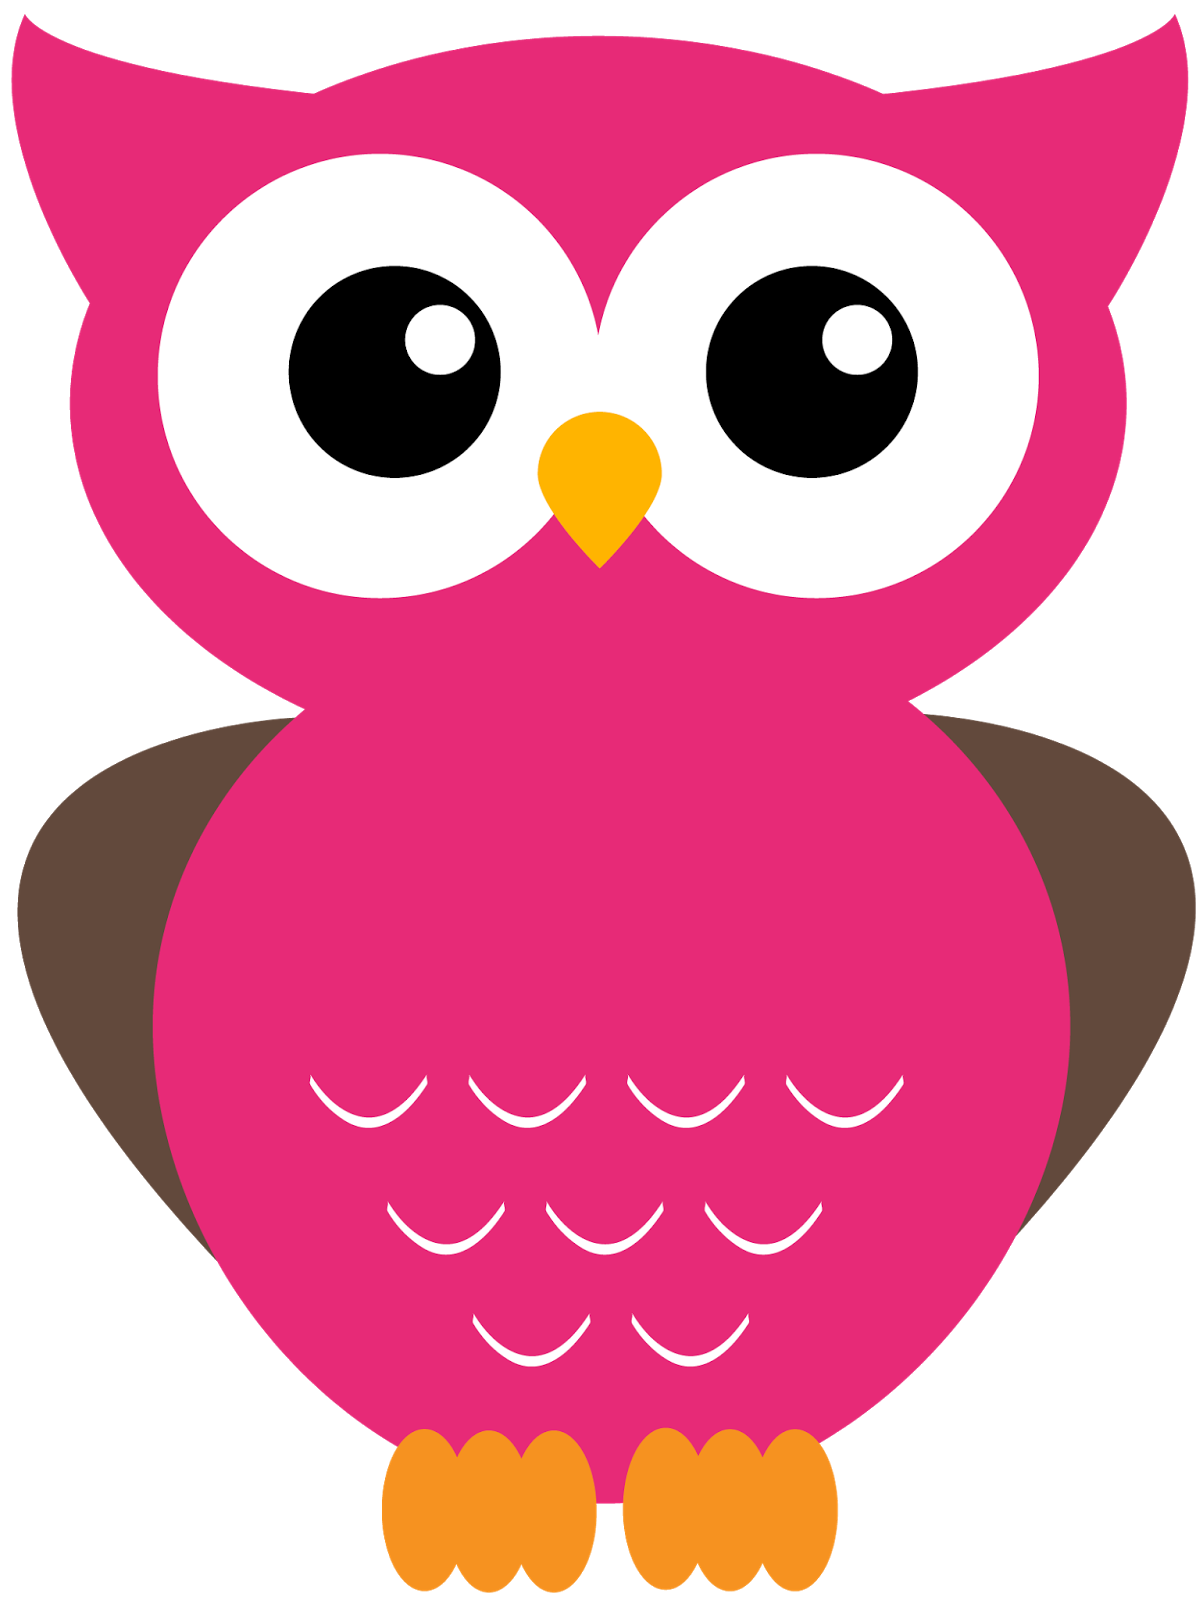 Owl heart clipart clip art royalty free download Giggle and Print: 12 More Adorable Owl Printables!!!! | art for ... clip art royalty free download